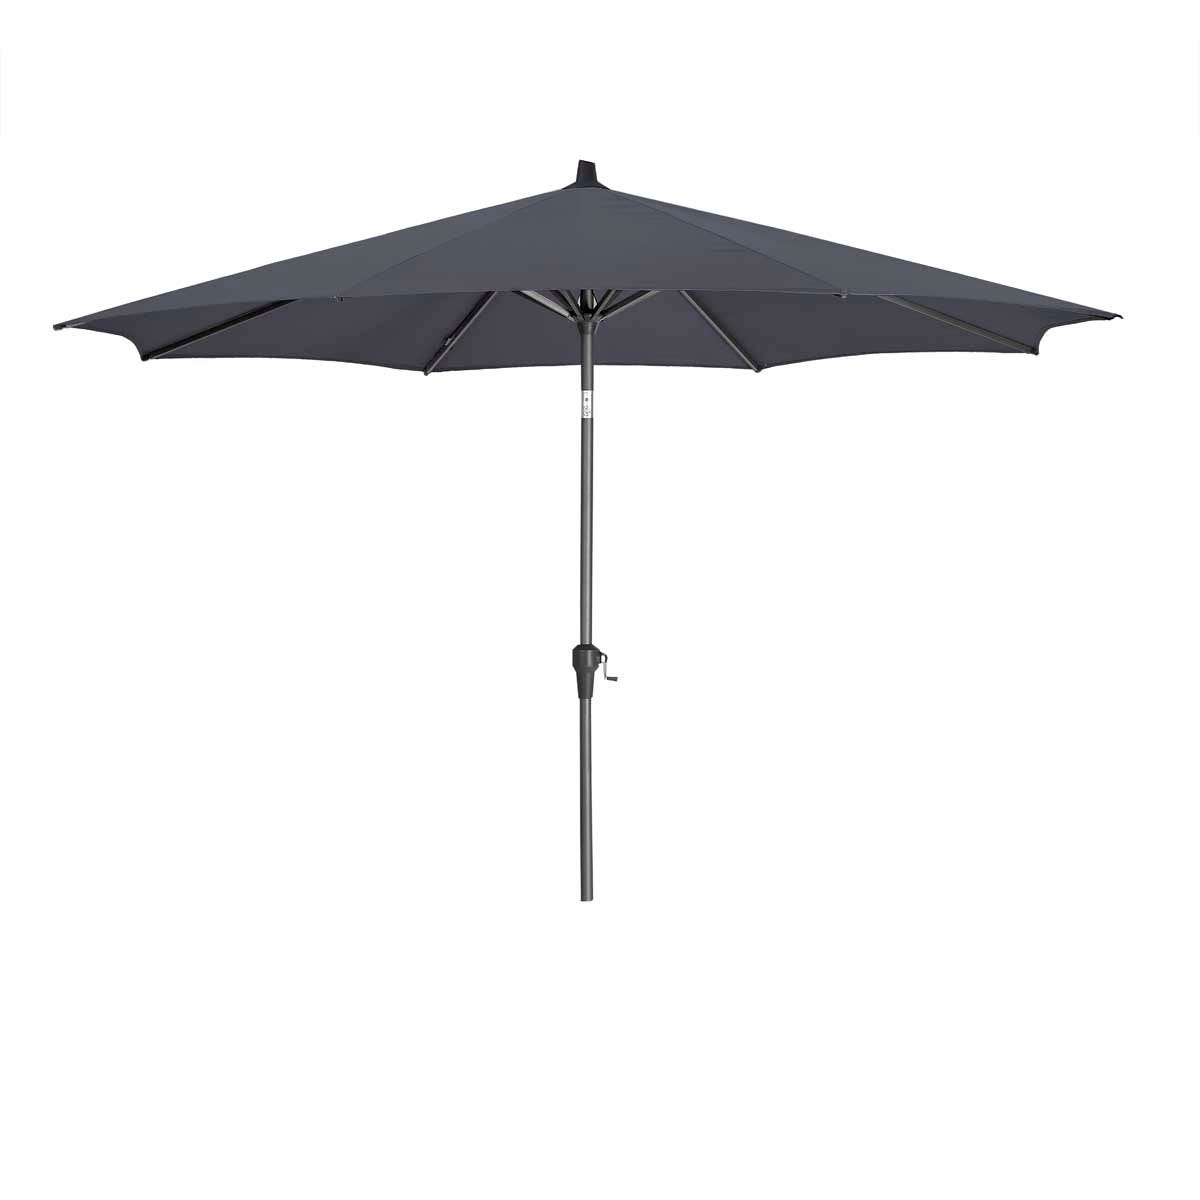 Platinum Riva 3m Round Parasol (base not included) - Anthracite Grey